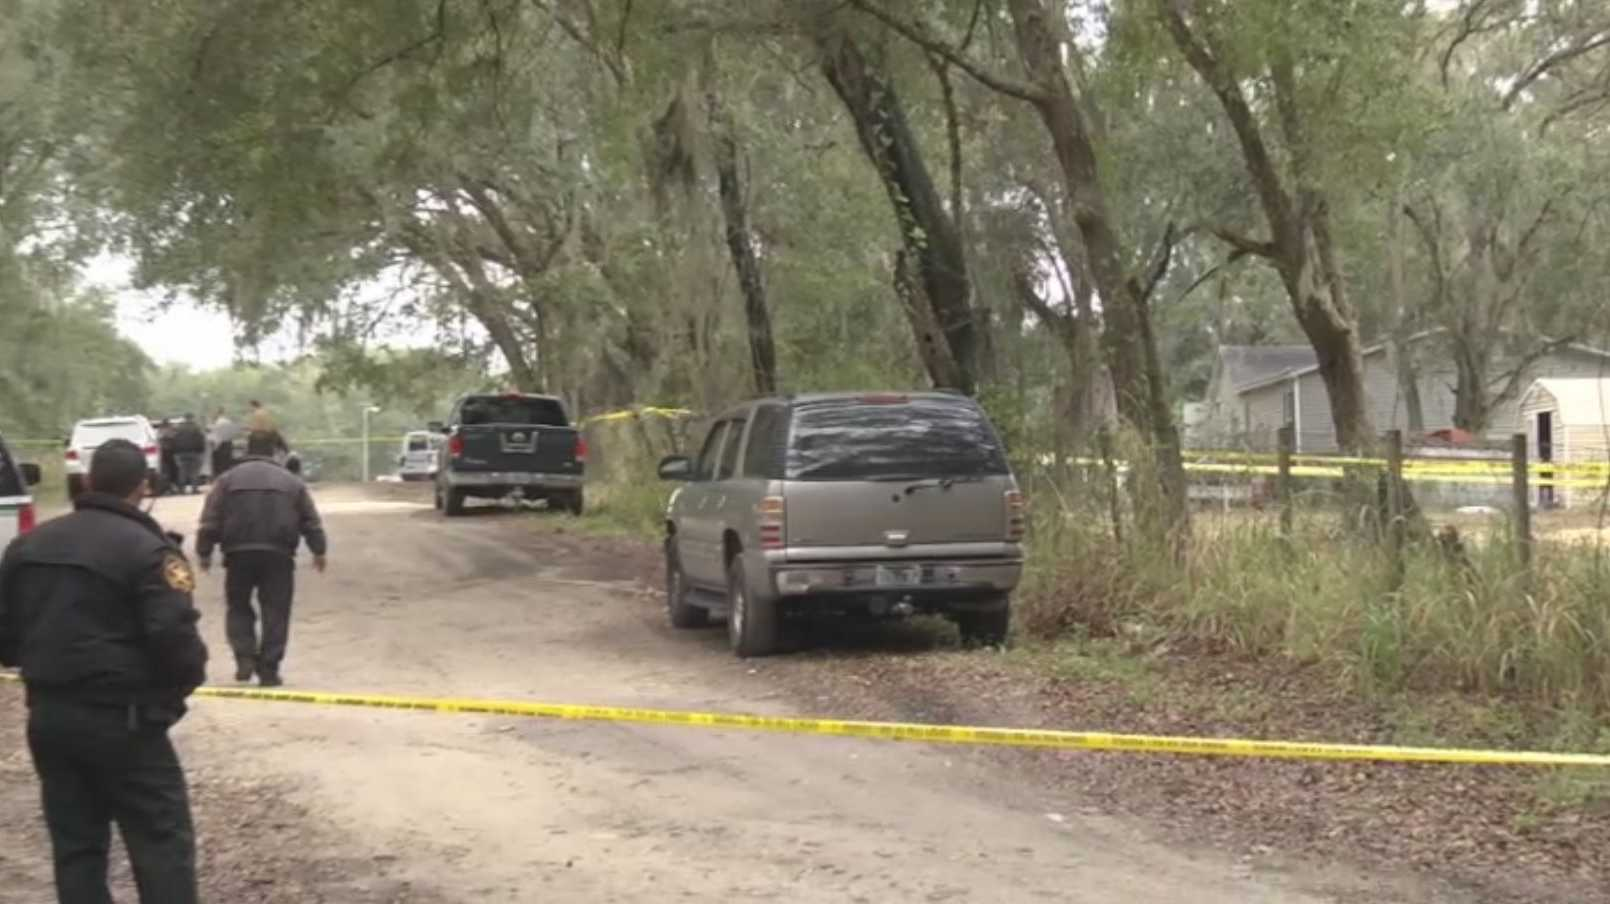 weirsdale men The home is on a dirt road just off county road 25 between weirsdale and east lake weir two fatally shot at home in weirsdale they were both black men.